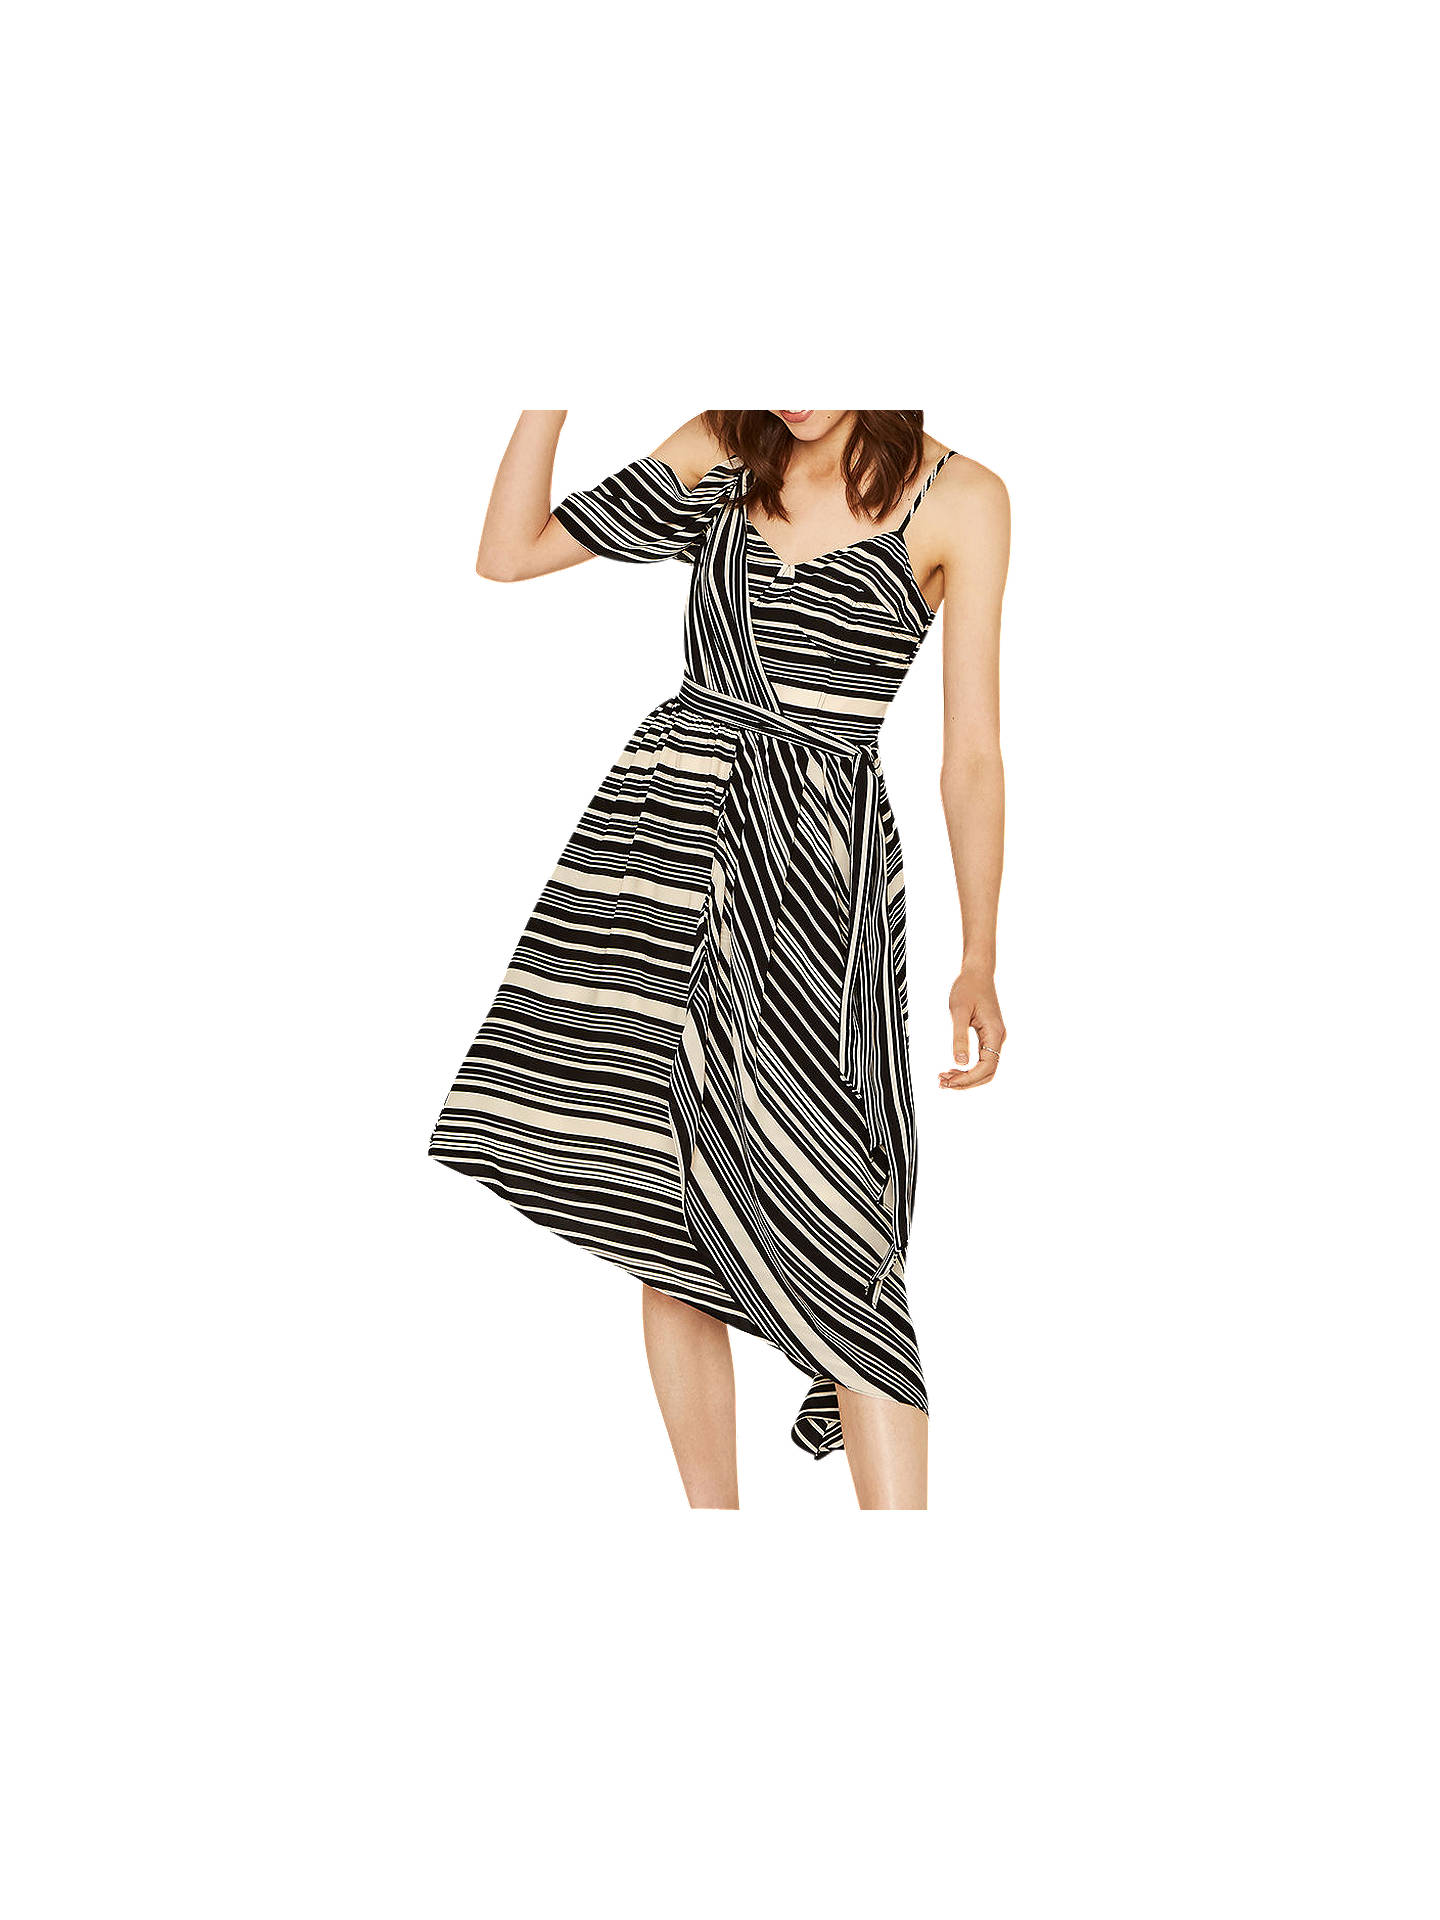 2a79ac24ce46 Buy Oasis Asymmetric Midi Dress, Black/White, 6 Online at johnlewis.com ...